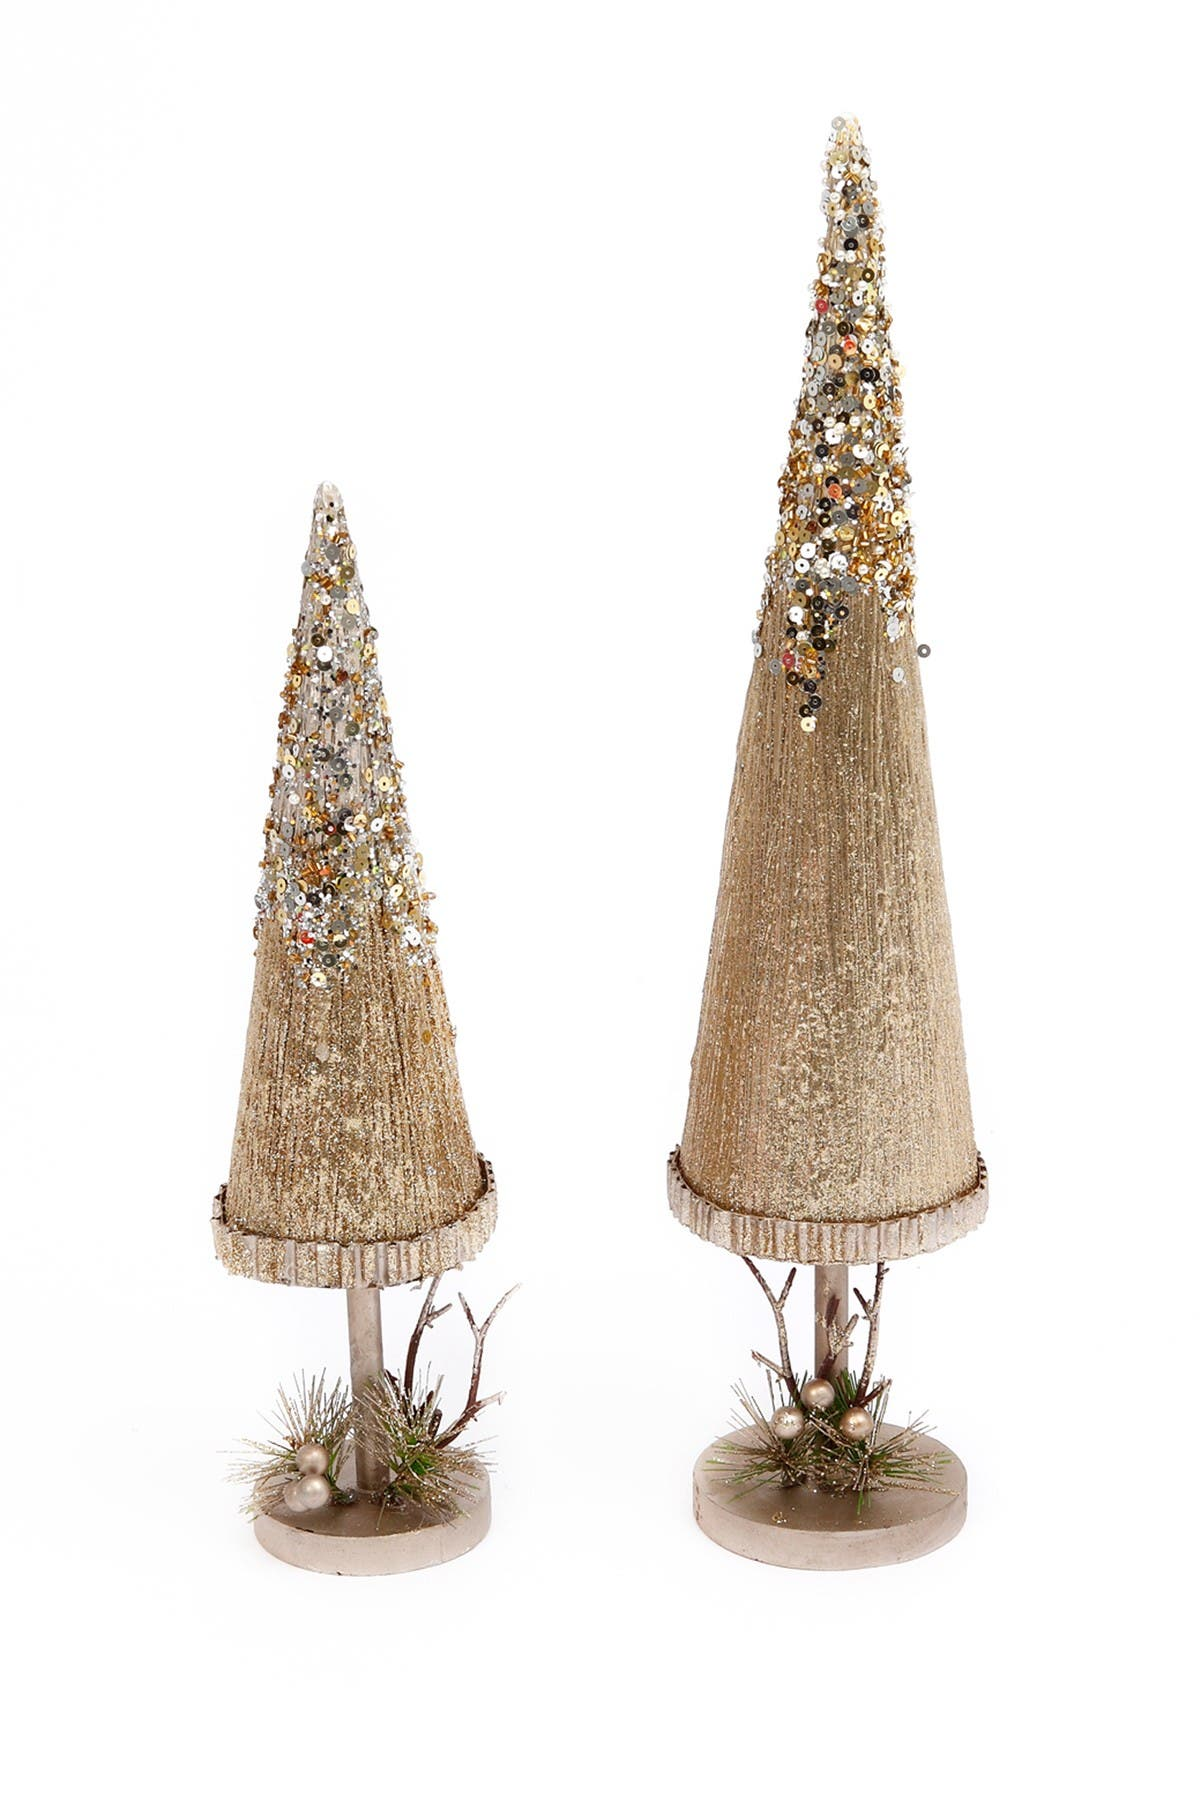 Image of Gerson Company Holiday Gold Glitter Pine & Berry Accent Trees - Set of 2